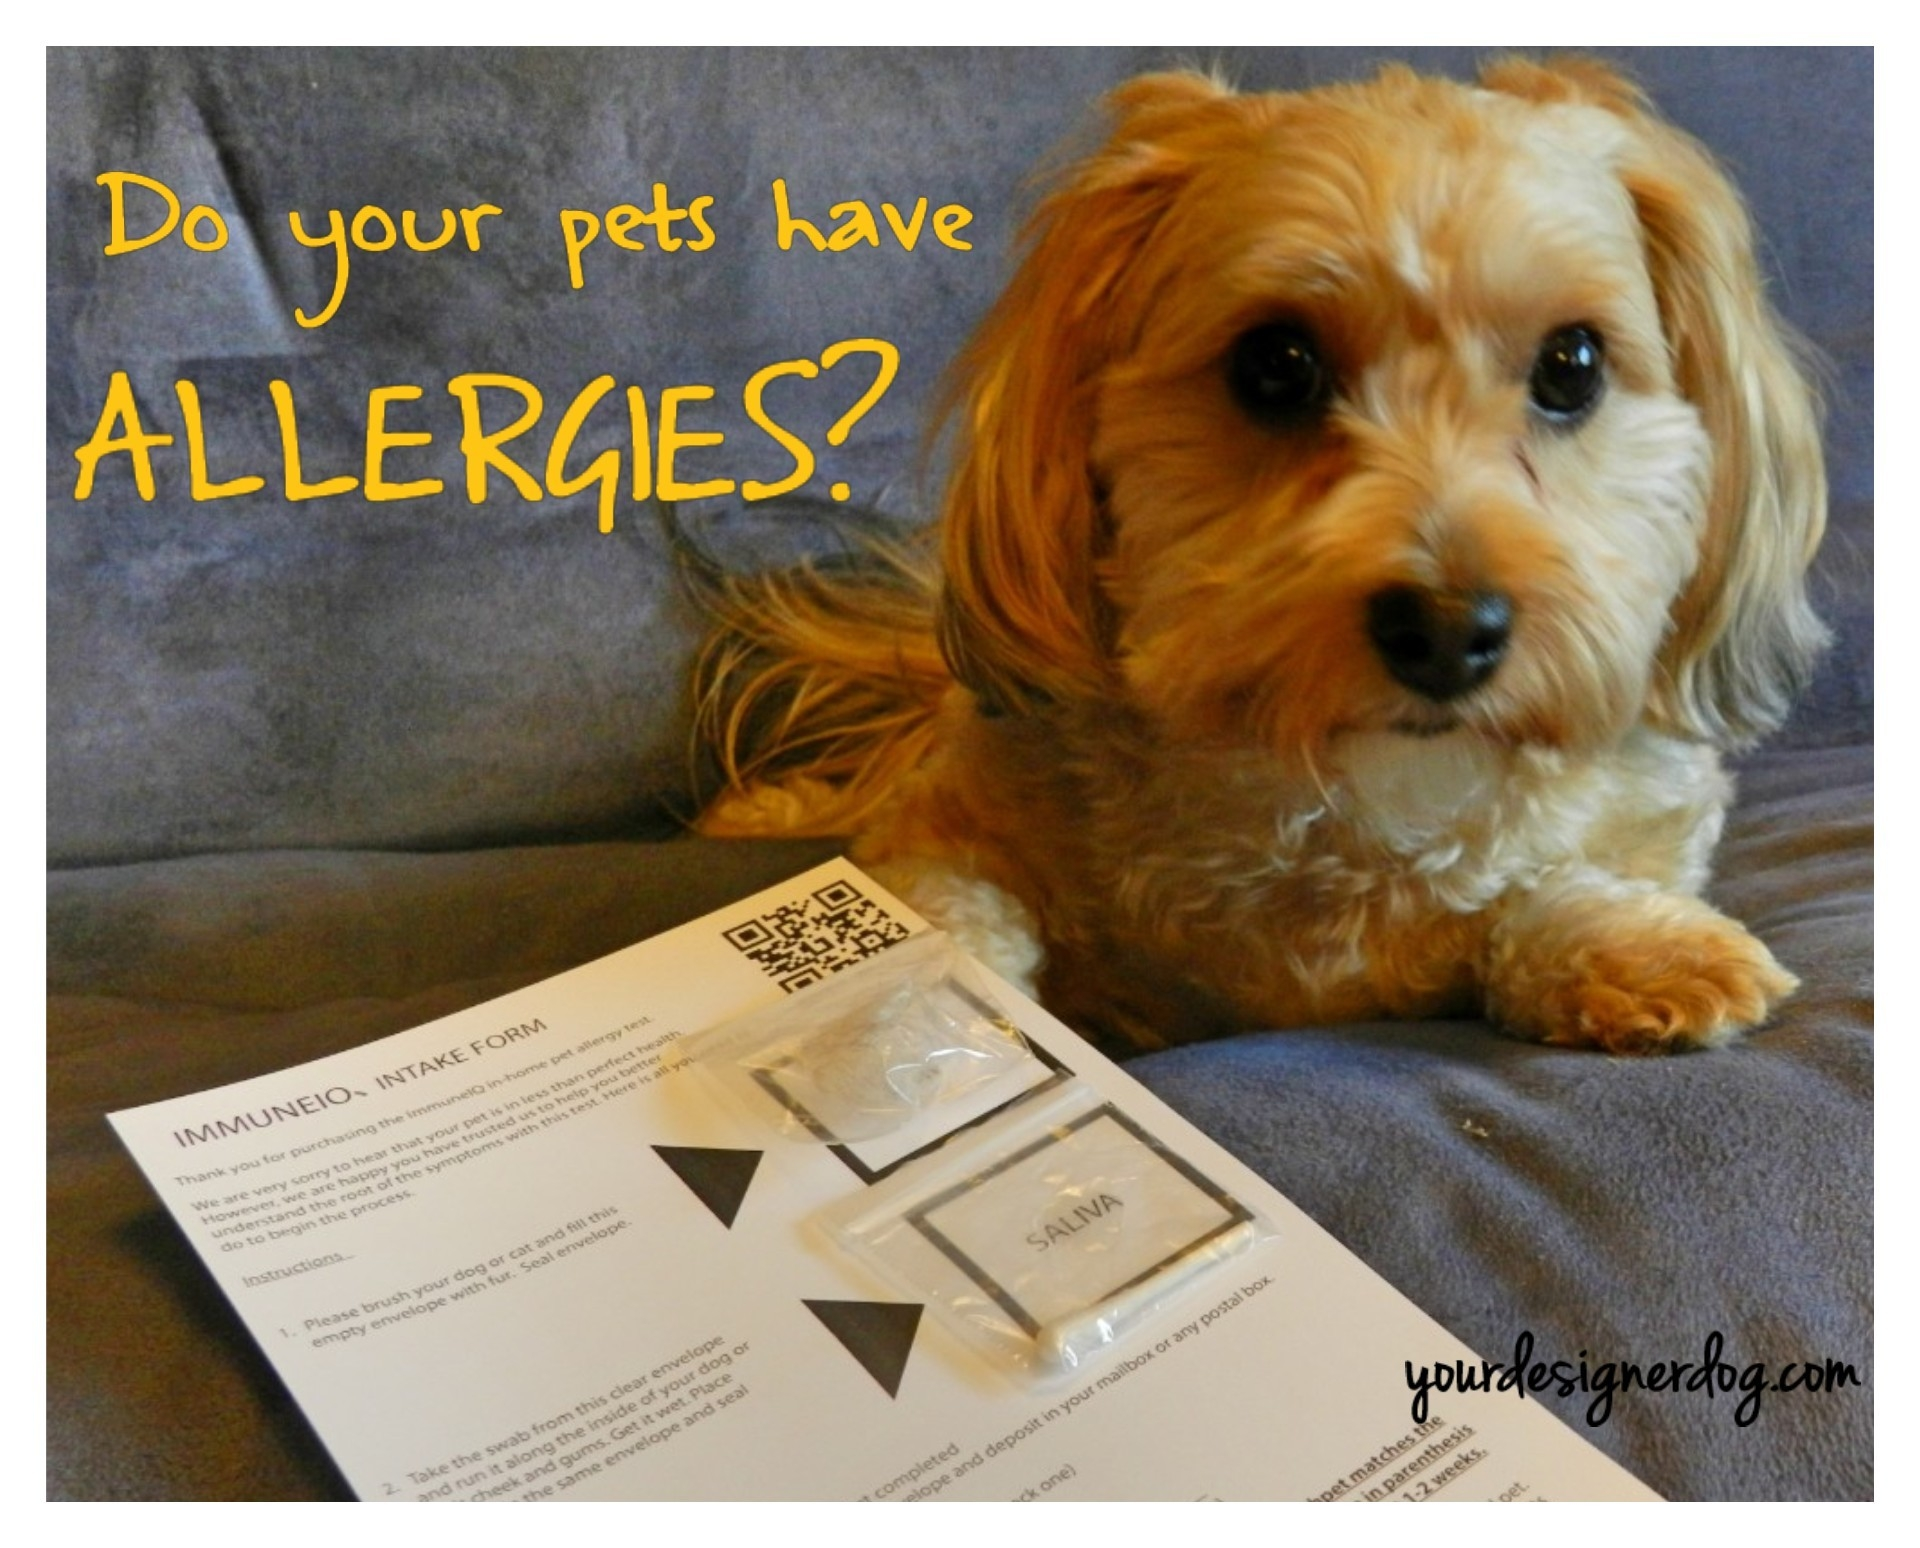 Do Your Pets Have Allergies? Find Out with ImmuneIQ!